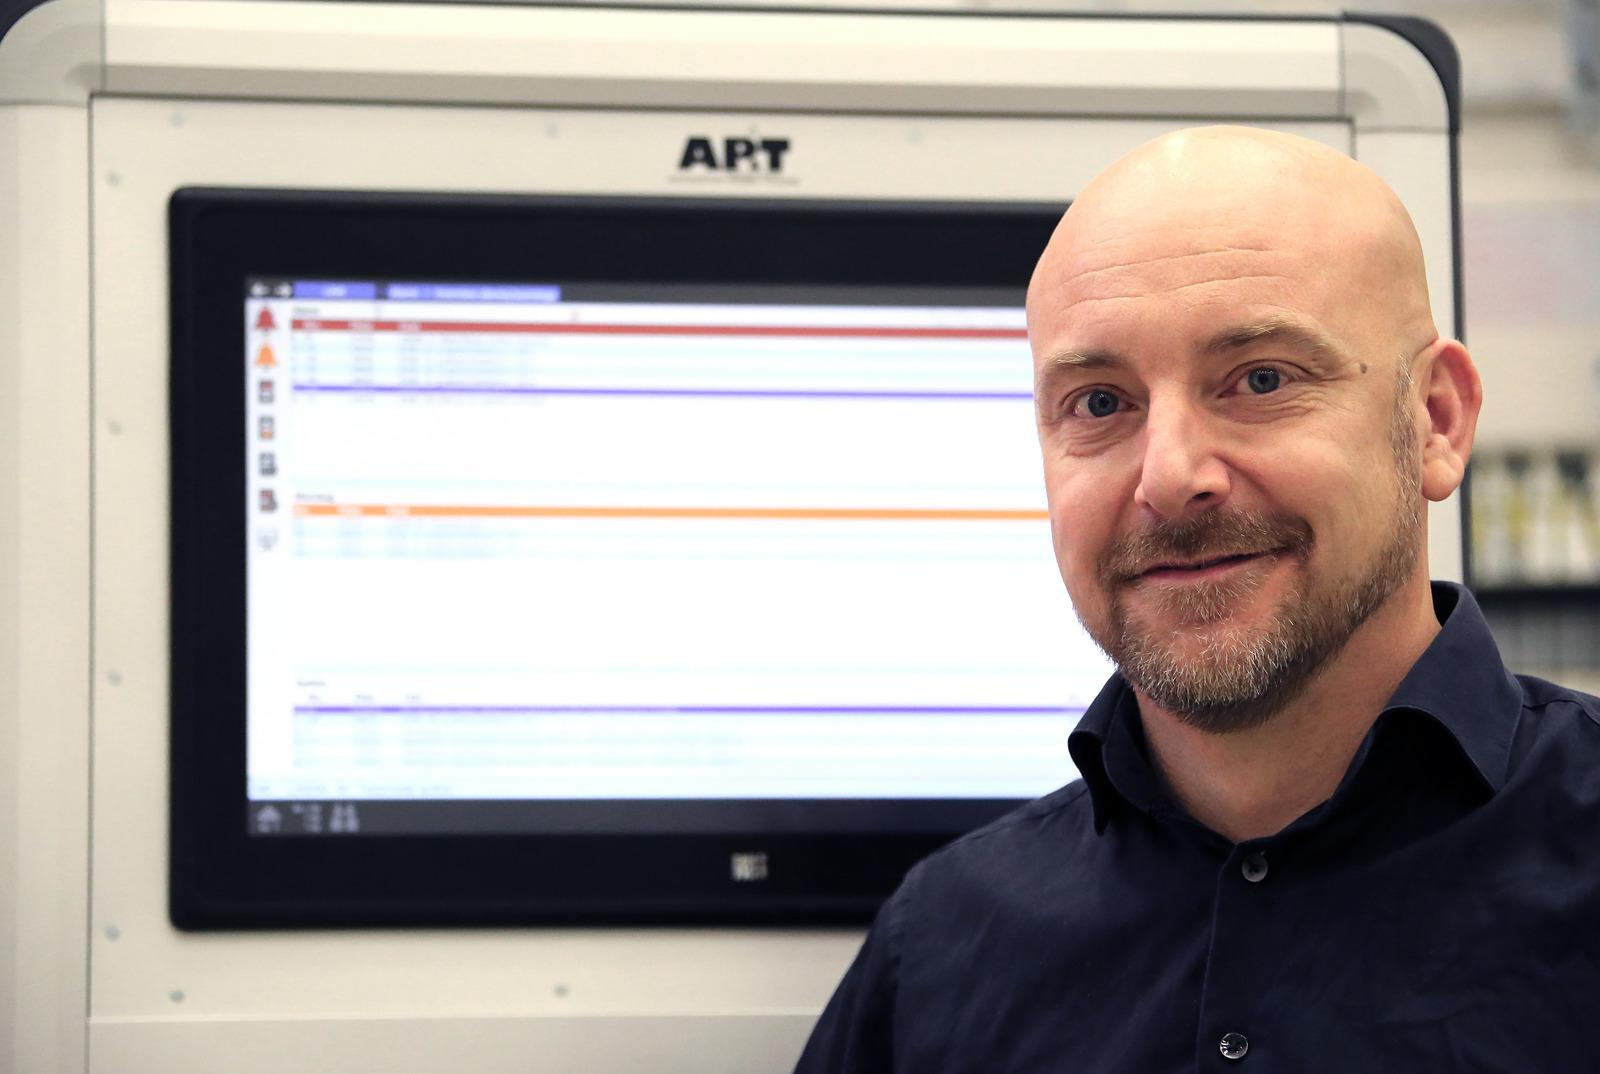 """Remotely connecting machines to AP&T's technical support is a simple means for customers to prevent operational disruptions and to ensure a high level of availability,"" says Mats Kinnby, Head of Global Technical Support at AP&T."